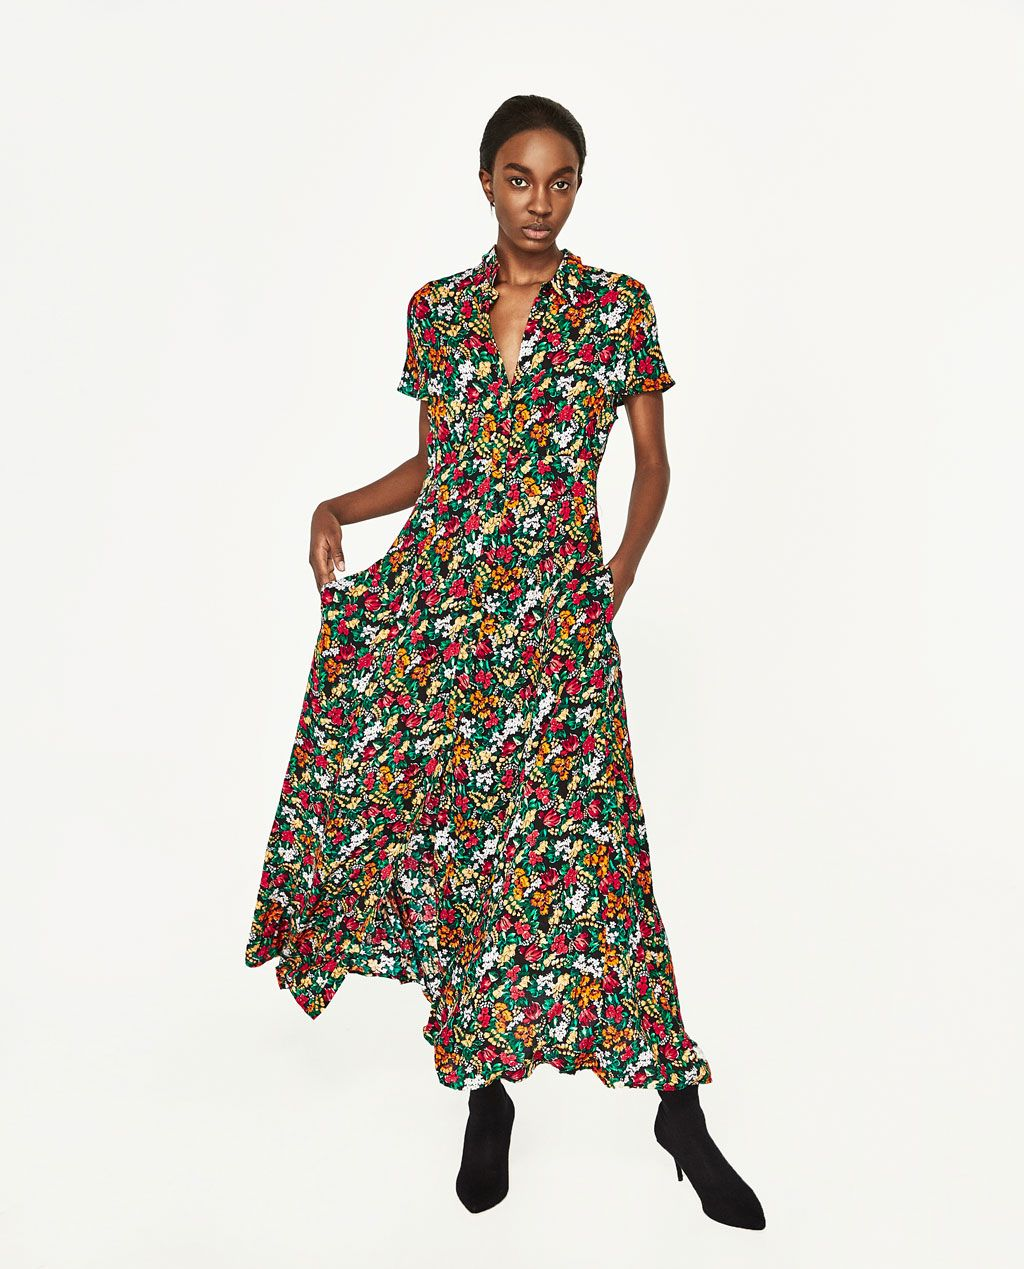 94f7c00d4ff1 Image 1 of FLORAL PRINT DRESS from Zara